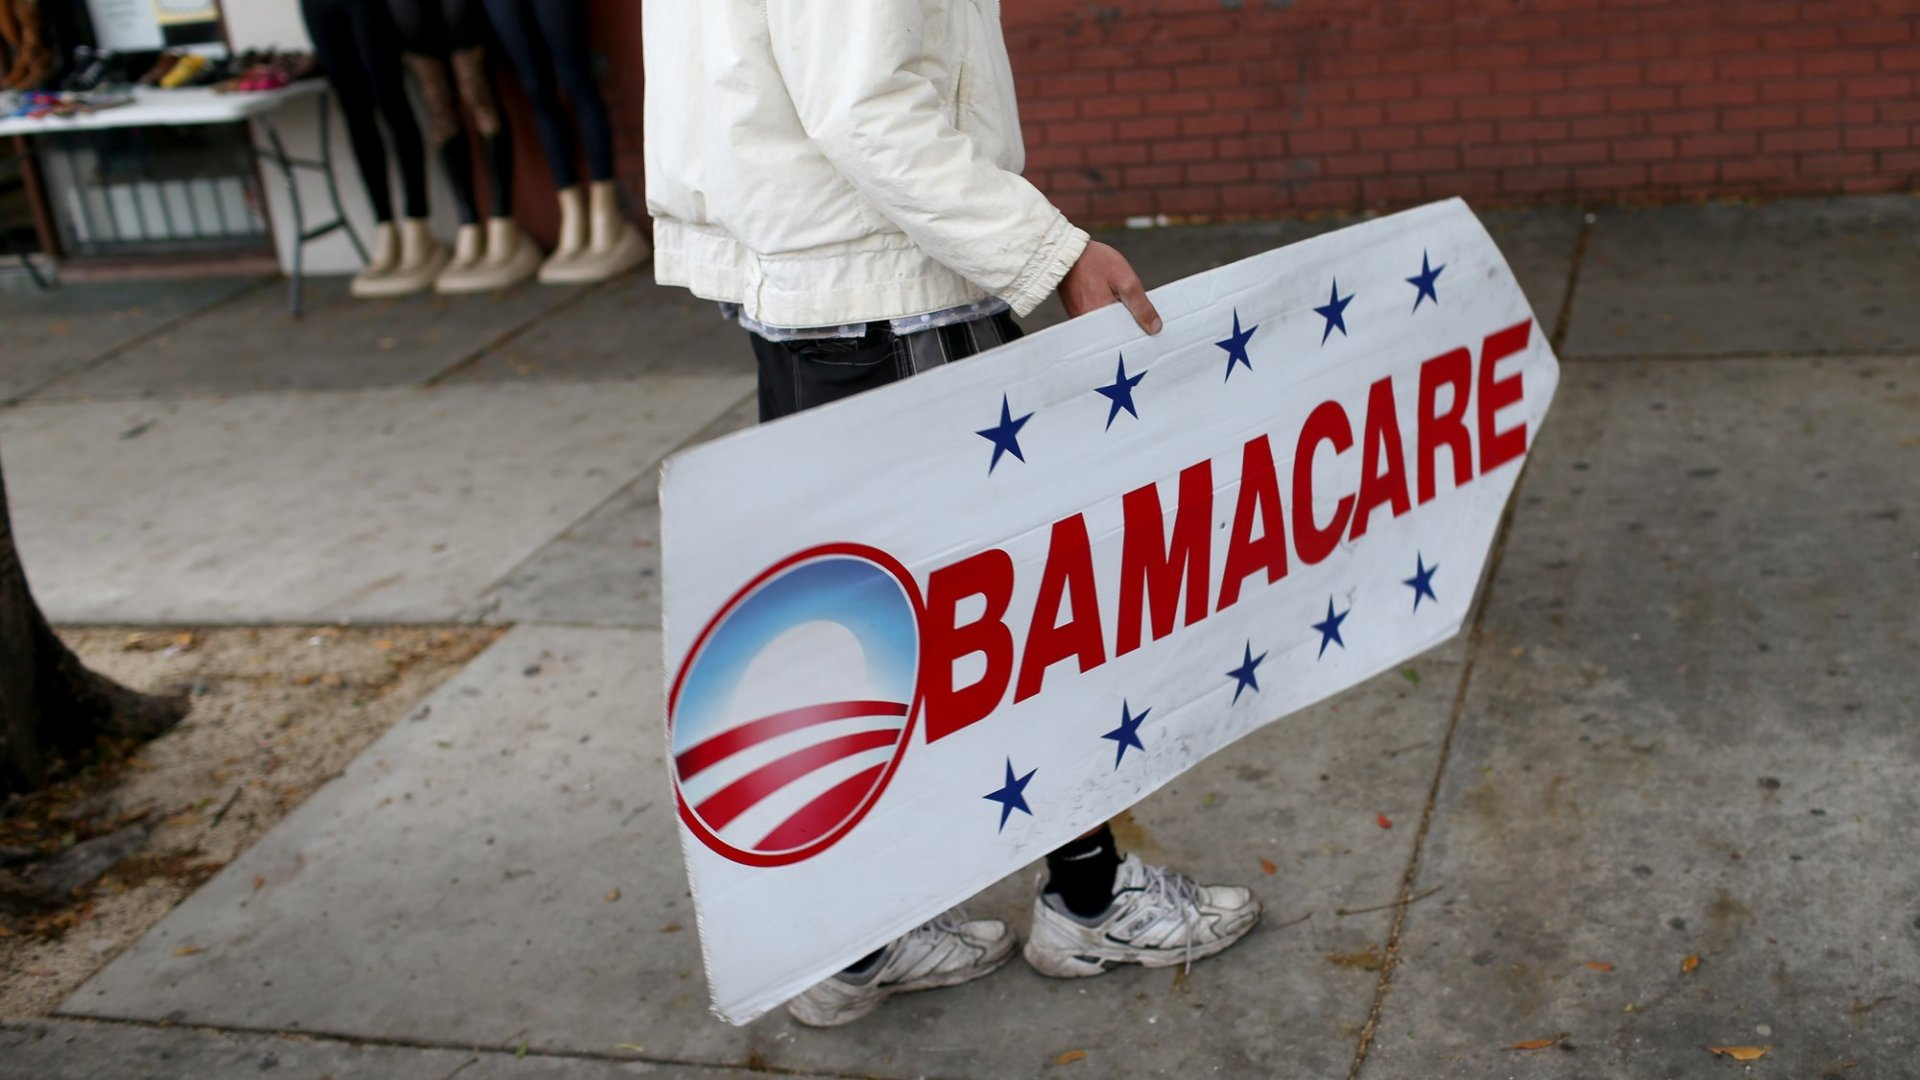 Appeals Court Seems Inclined to Rulethe Obamacare Mandate asUnconstitutional